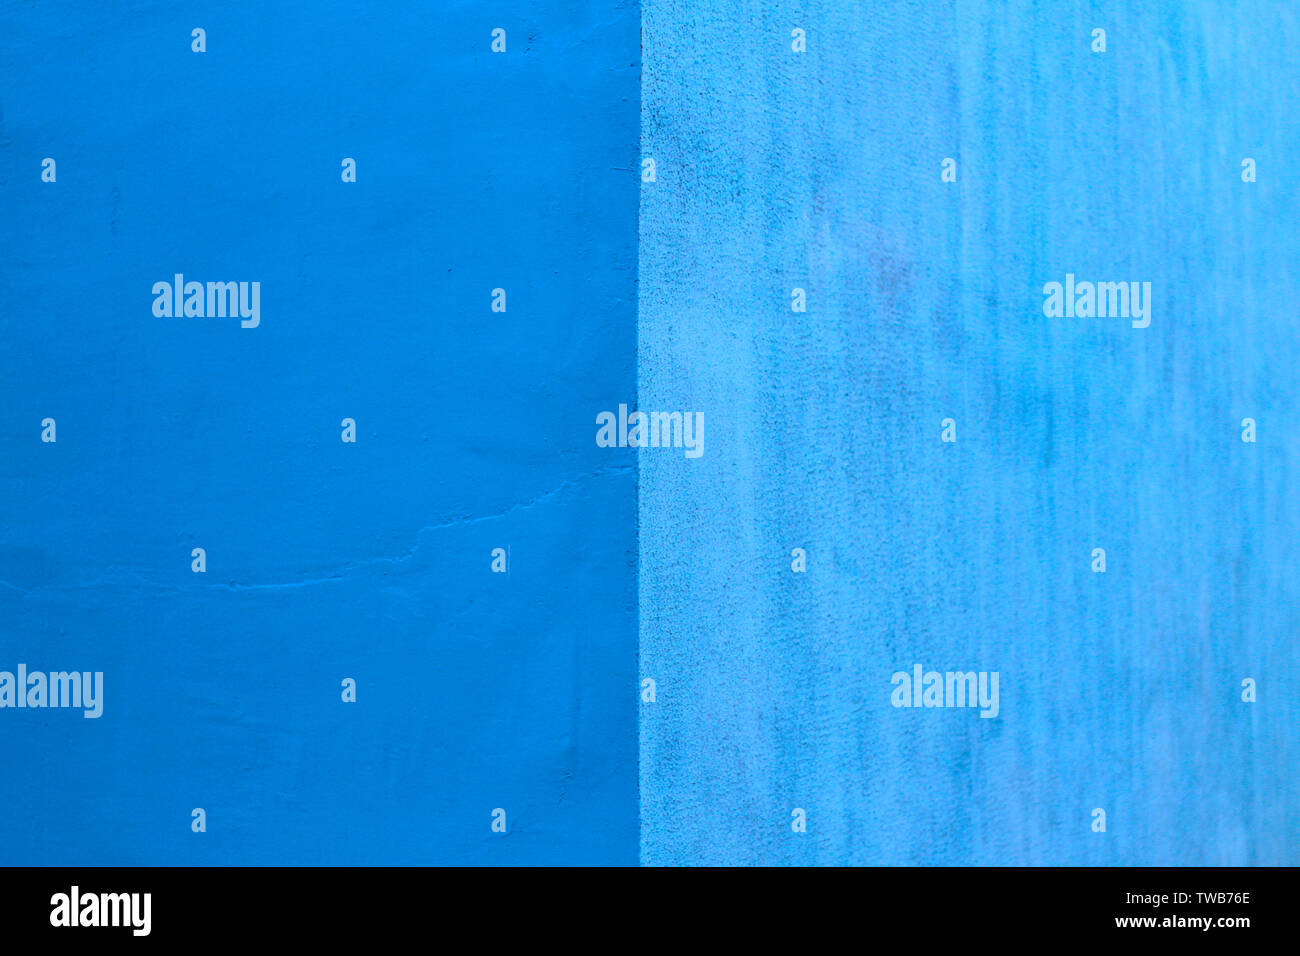 abstract image of a wall of two equal shades of blue - Stock Image